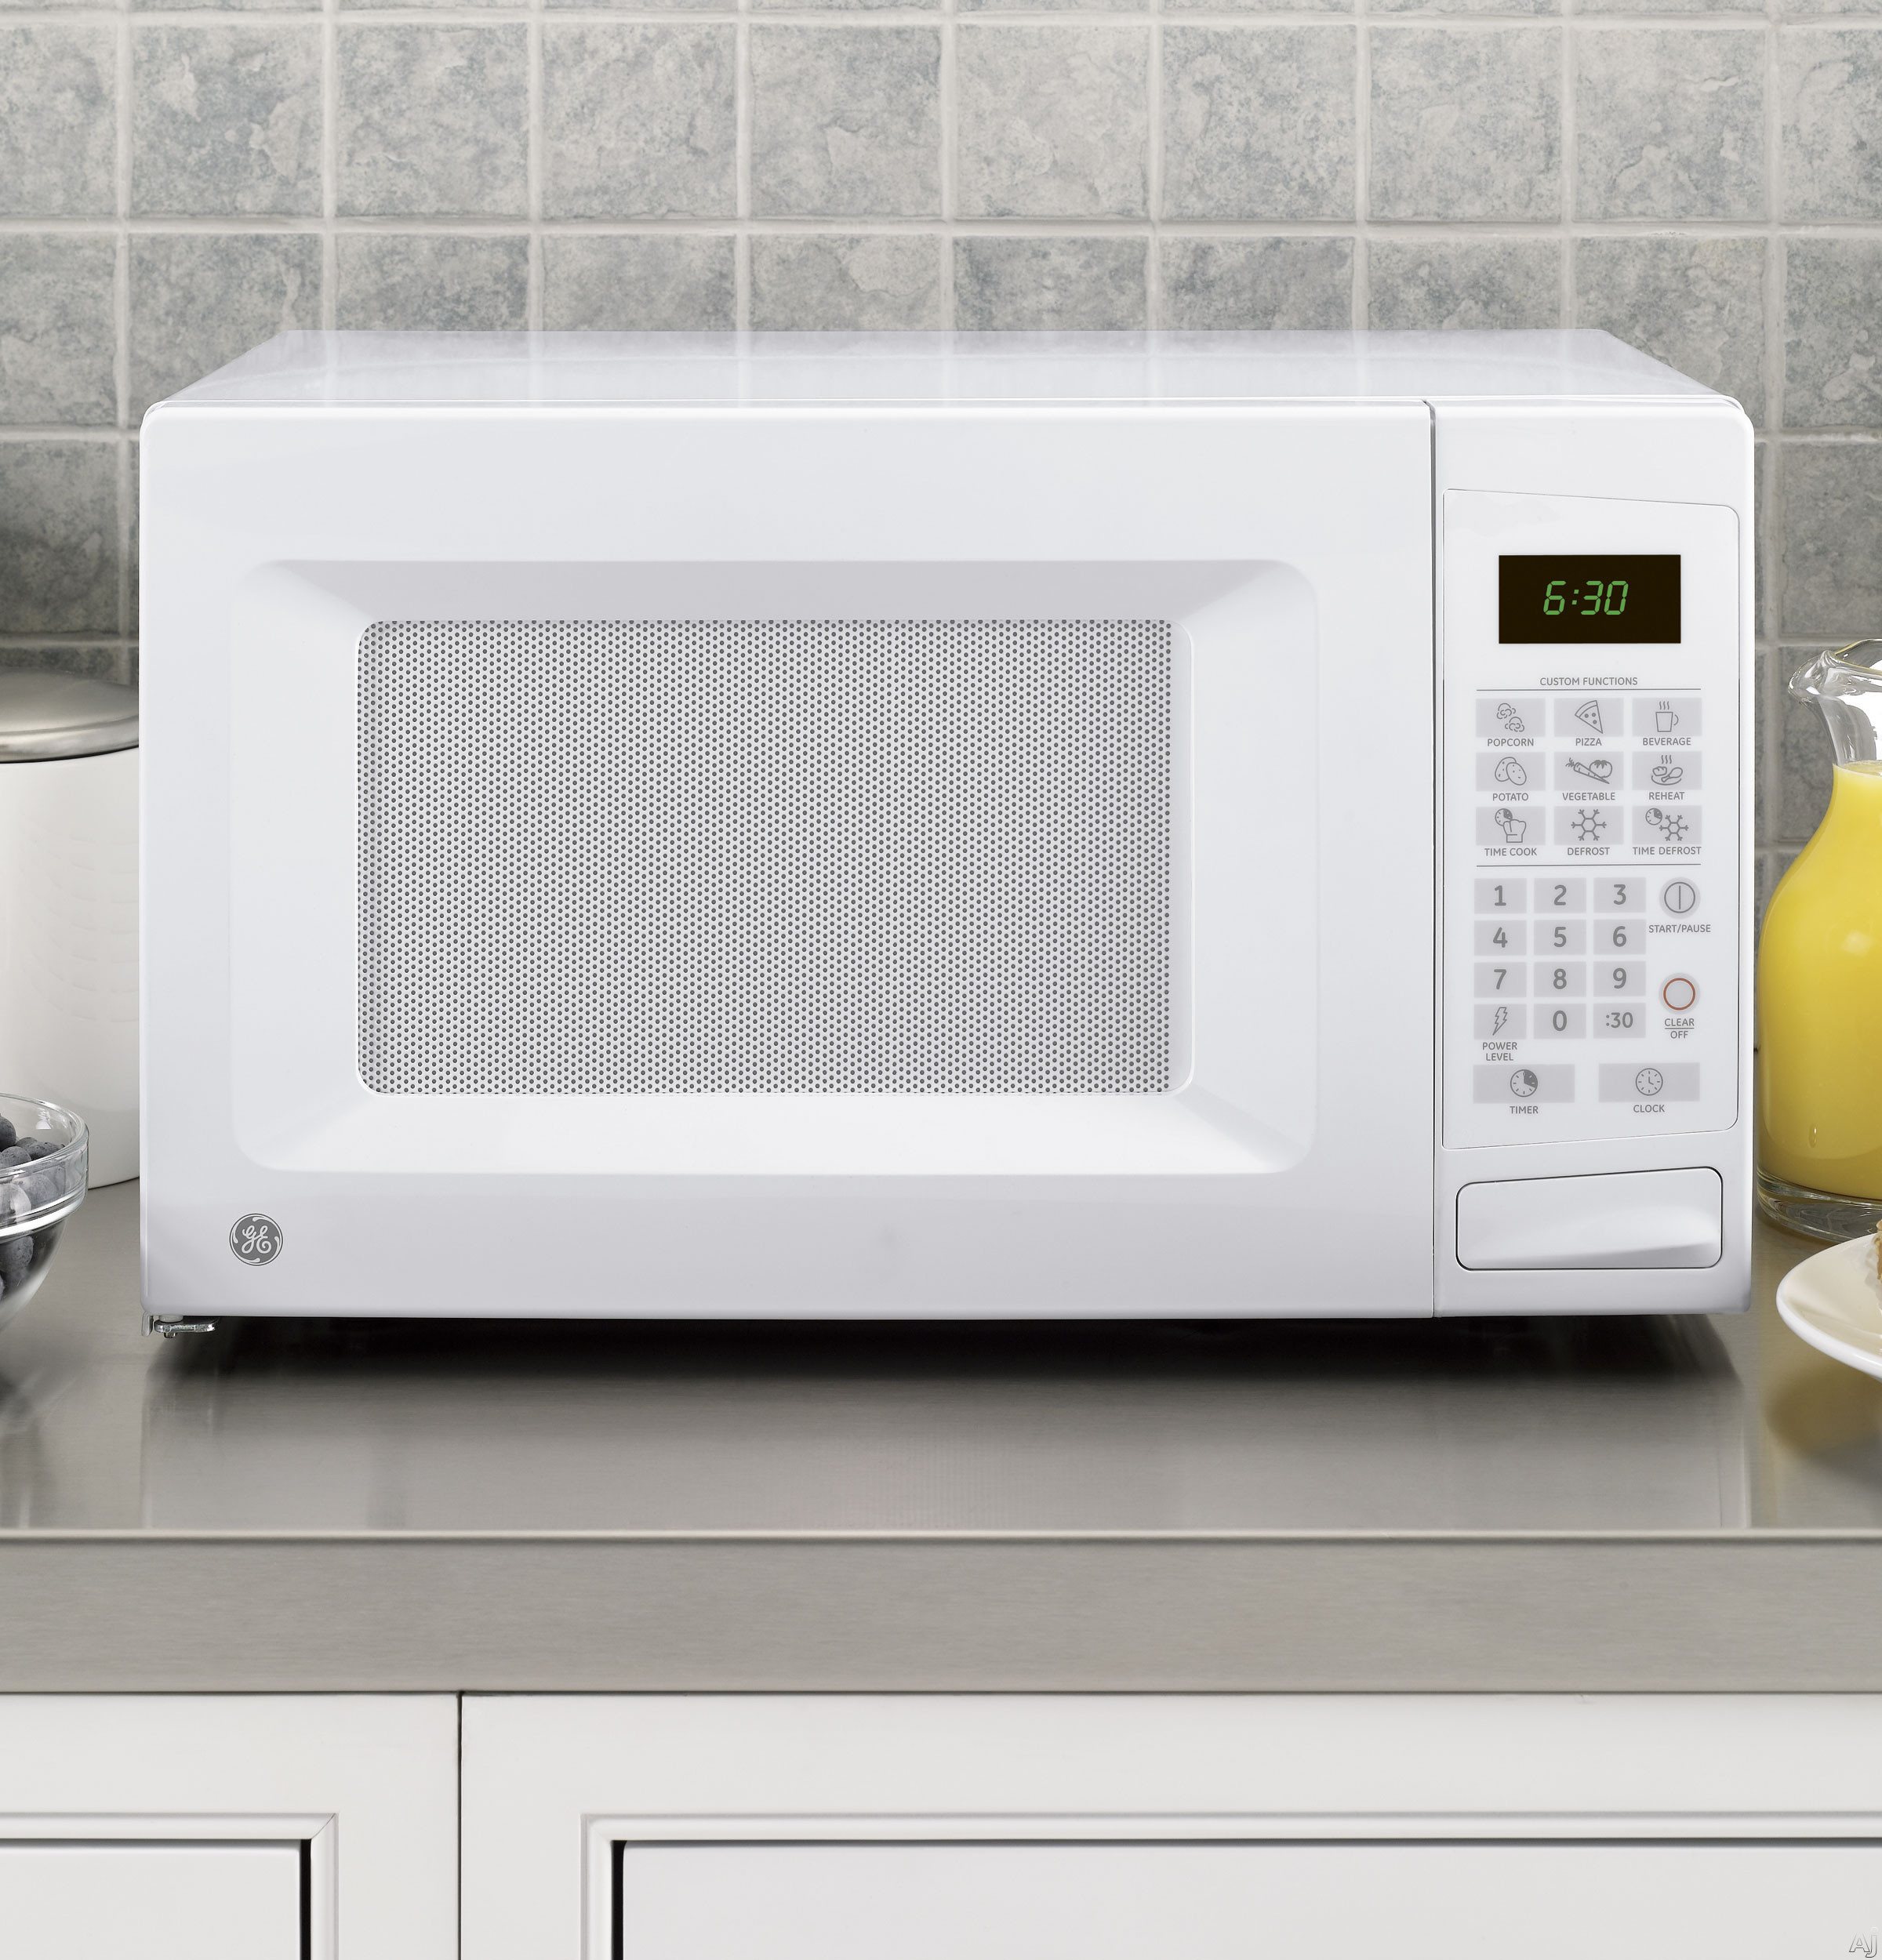 GE JES1139DSWW 1.1 cu. ft. Countertop Microwave Oven with 1,100 ...